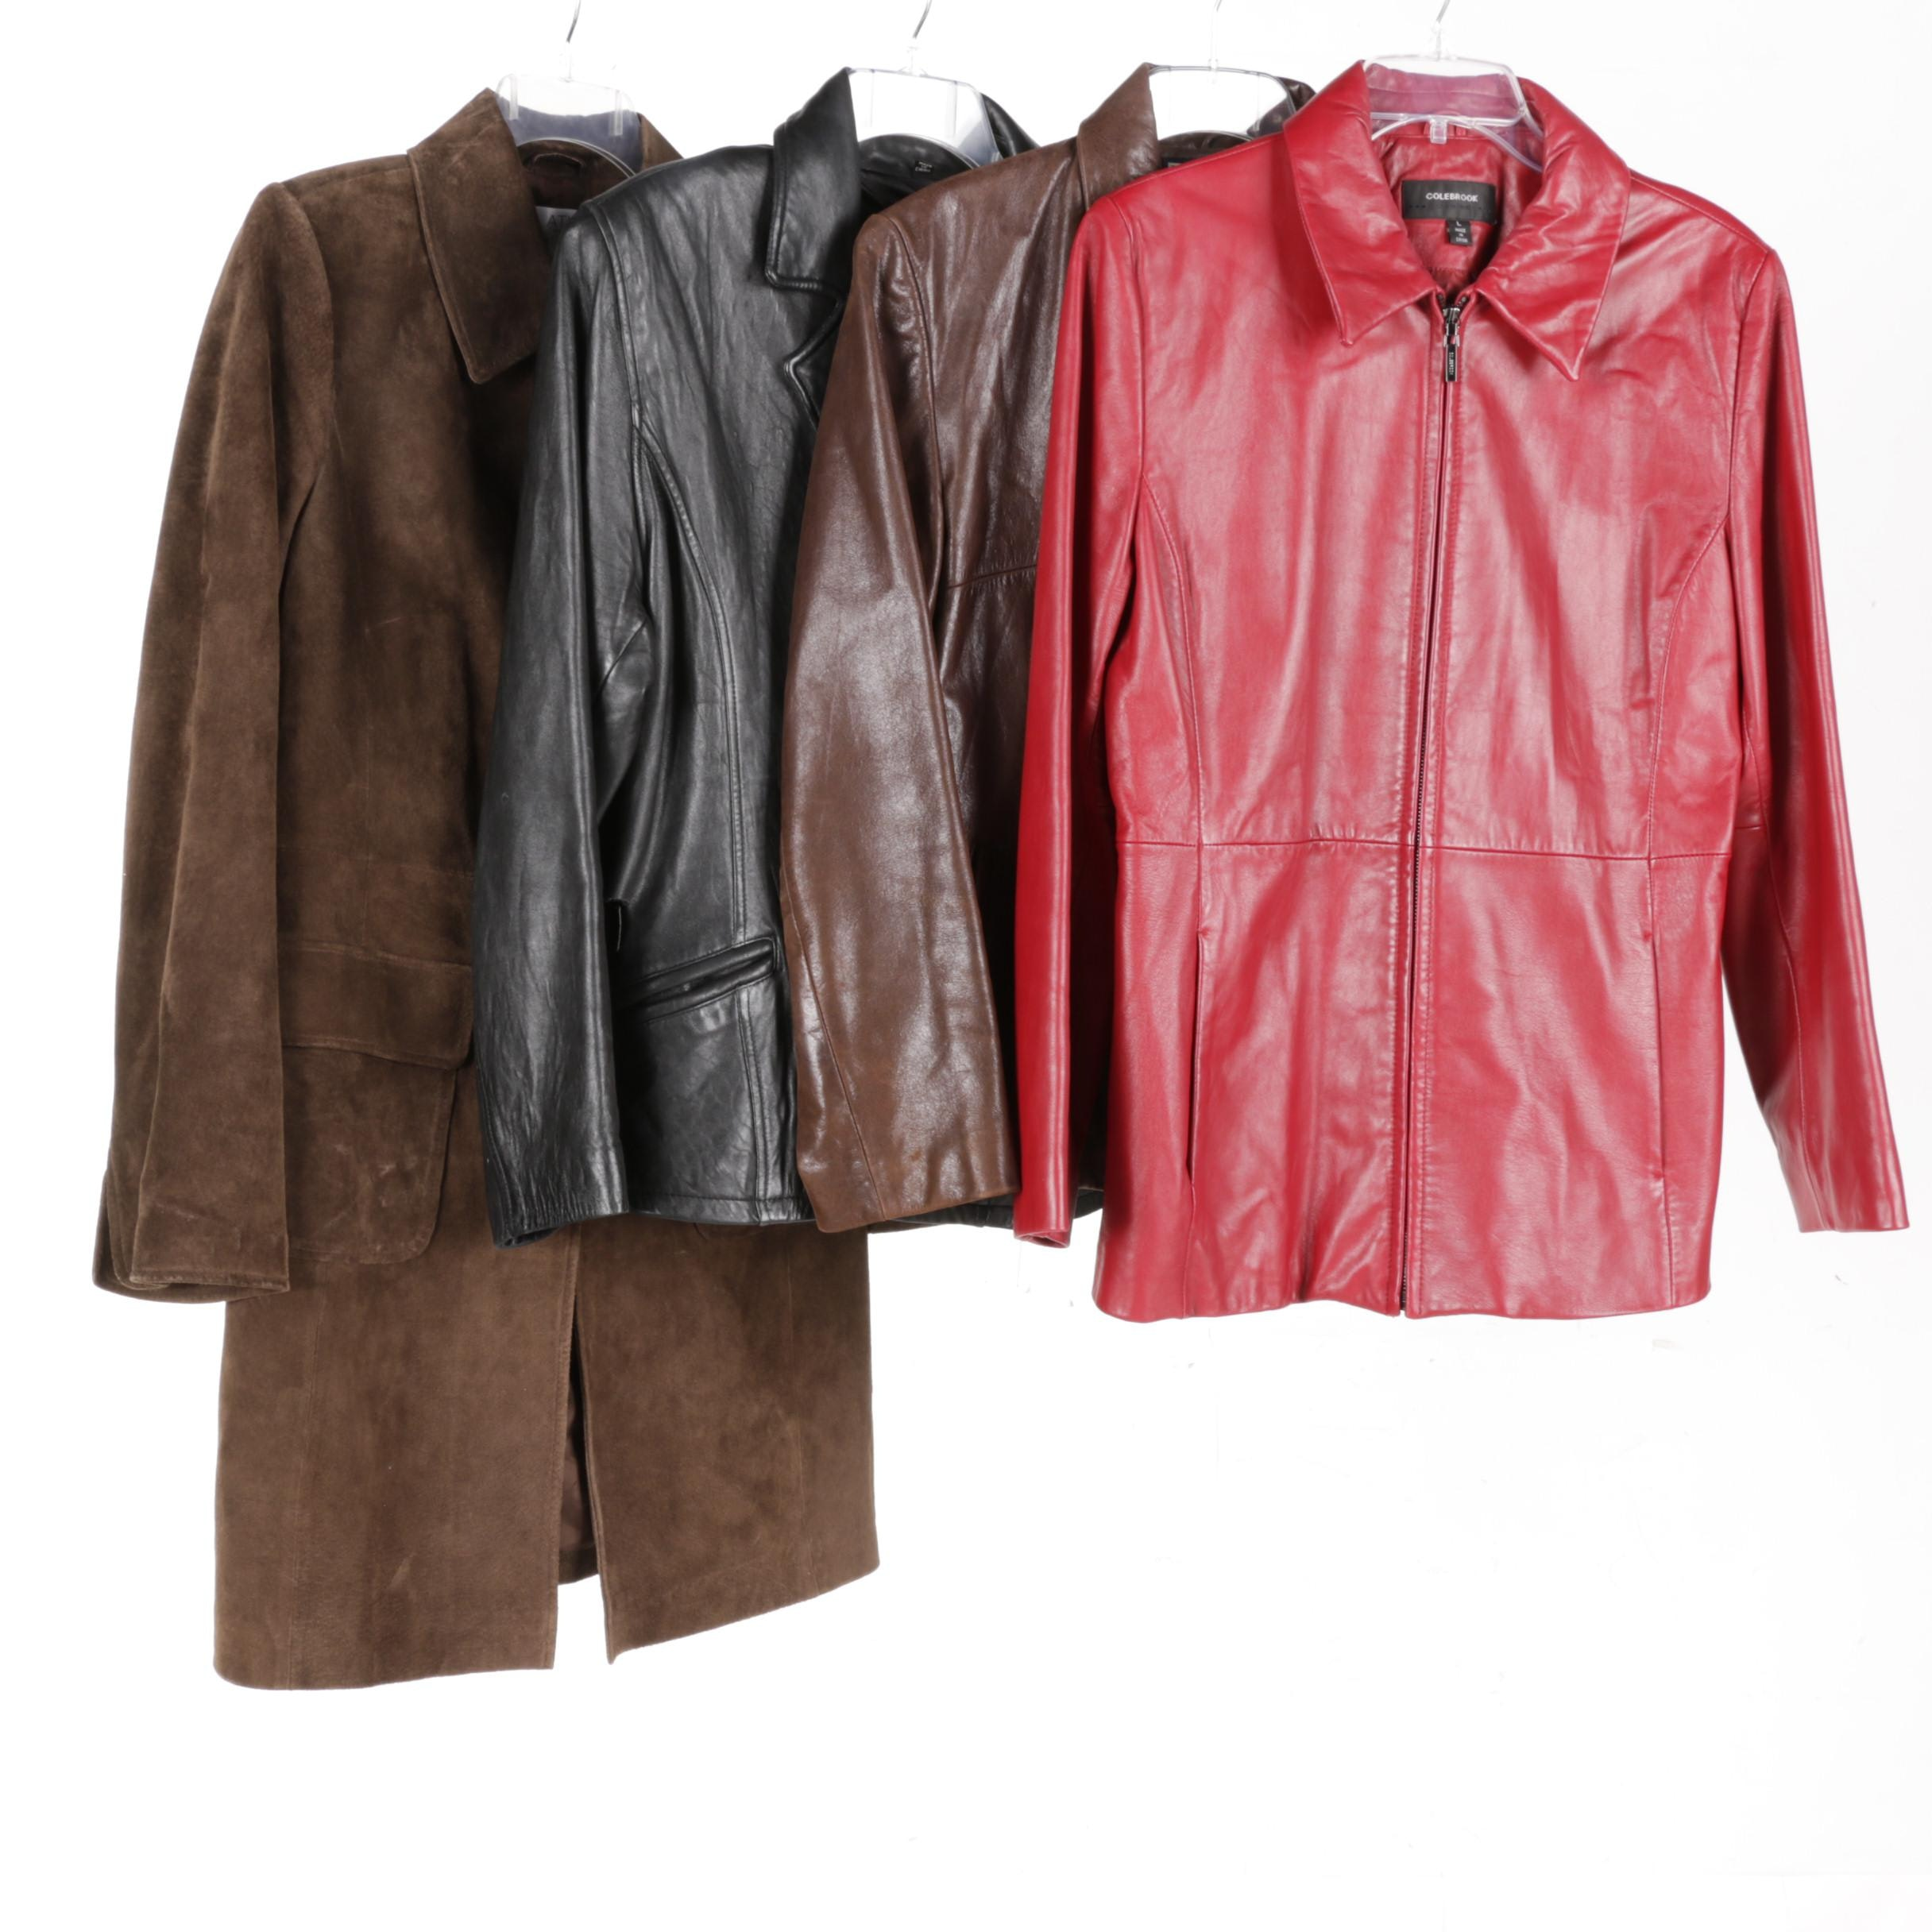 Women's Leather Jackets and a Coat Including Jones New York